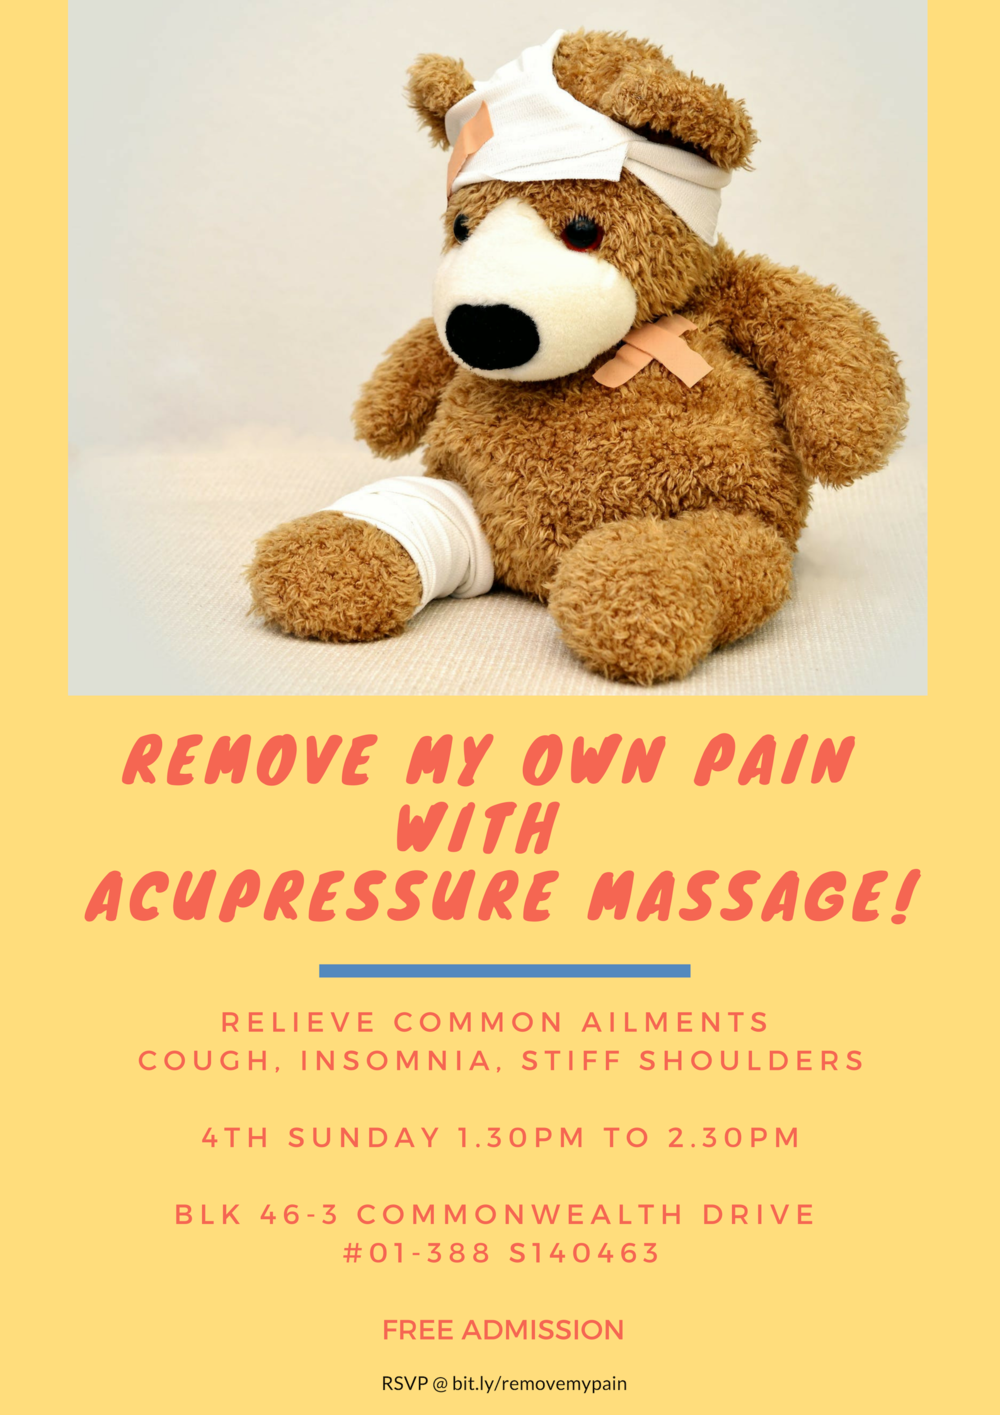 Remove My Own Pain with Acupressure Massage!   - 24 Feb 201924 Mar 2019Free AdmissionRegister at bit.ly/removemypain